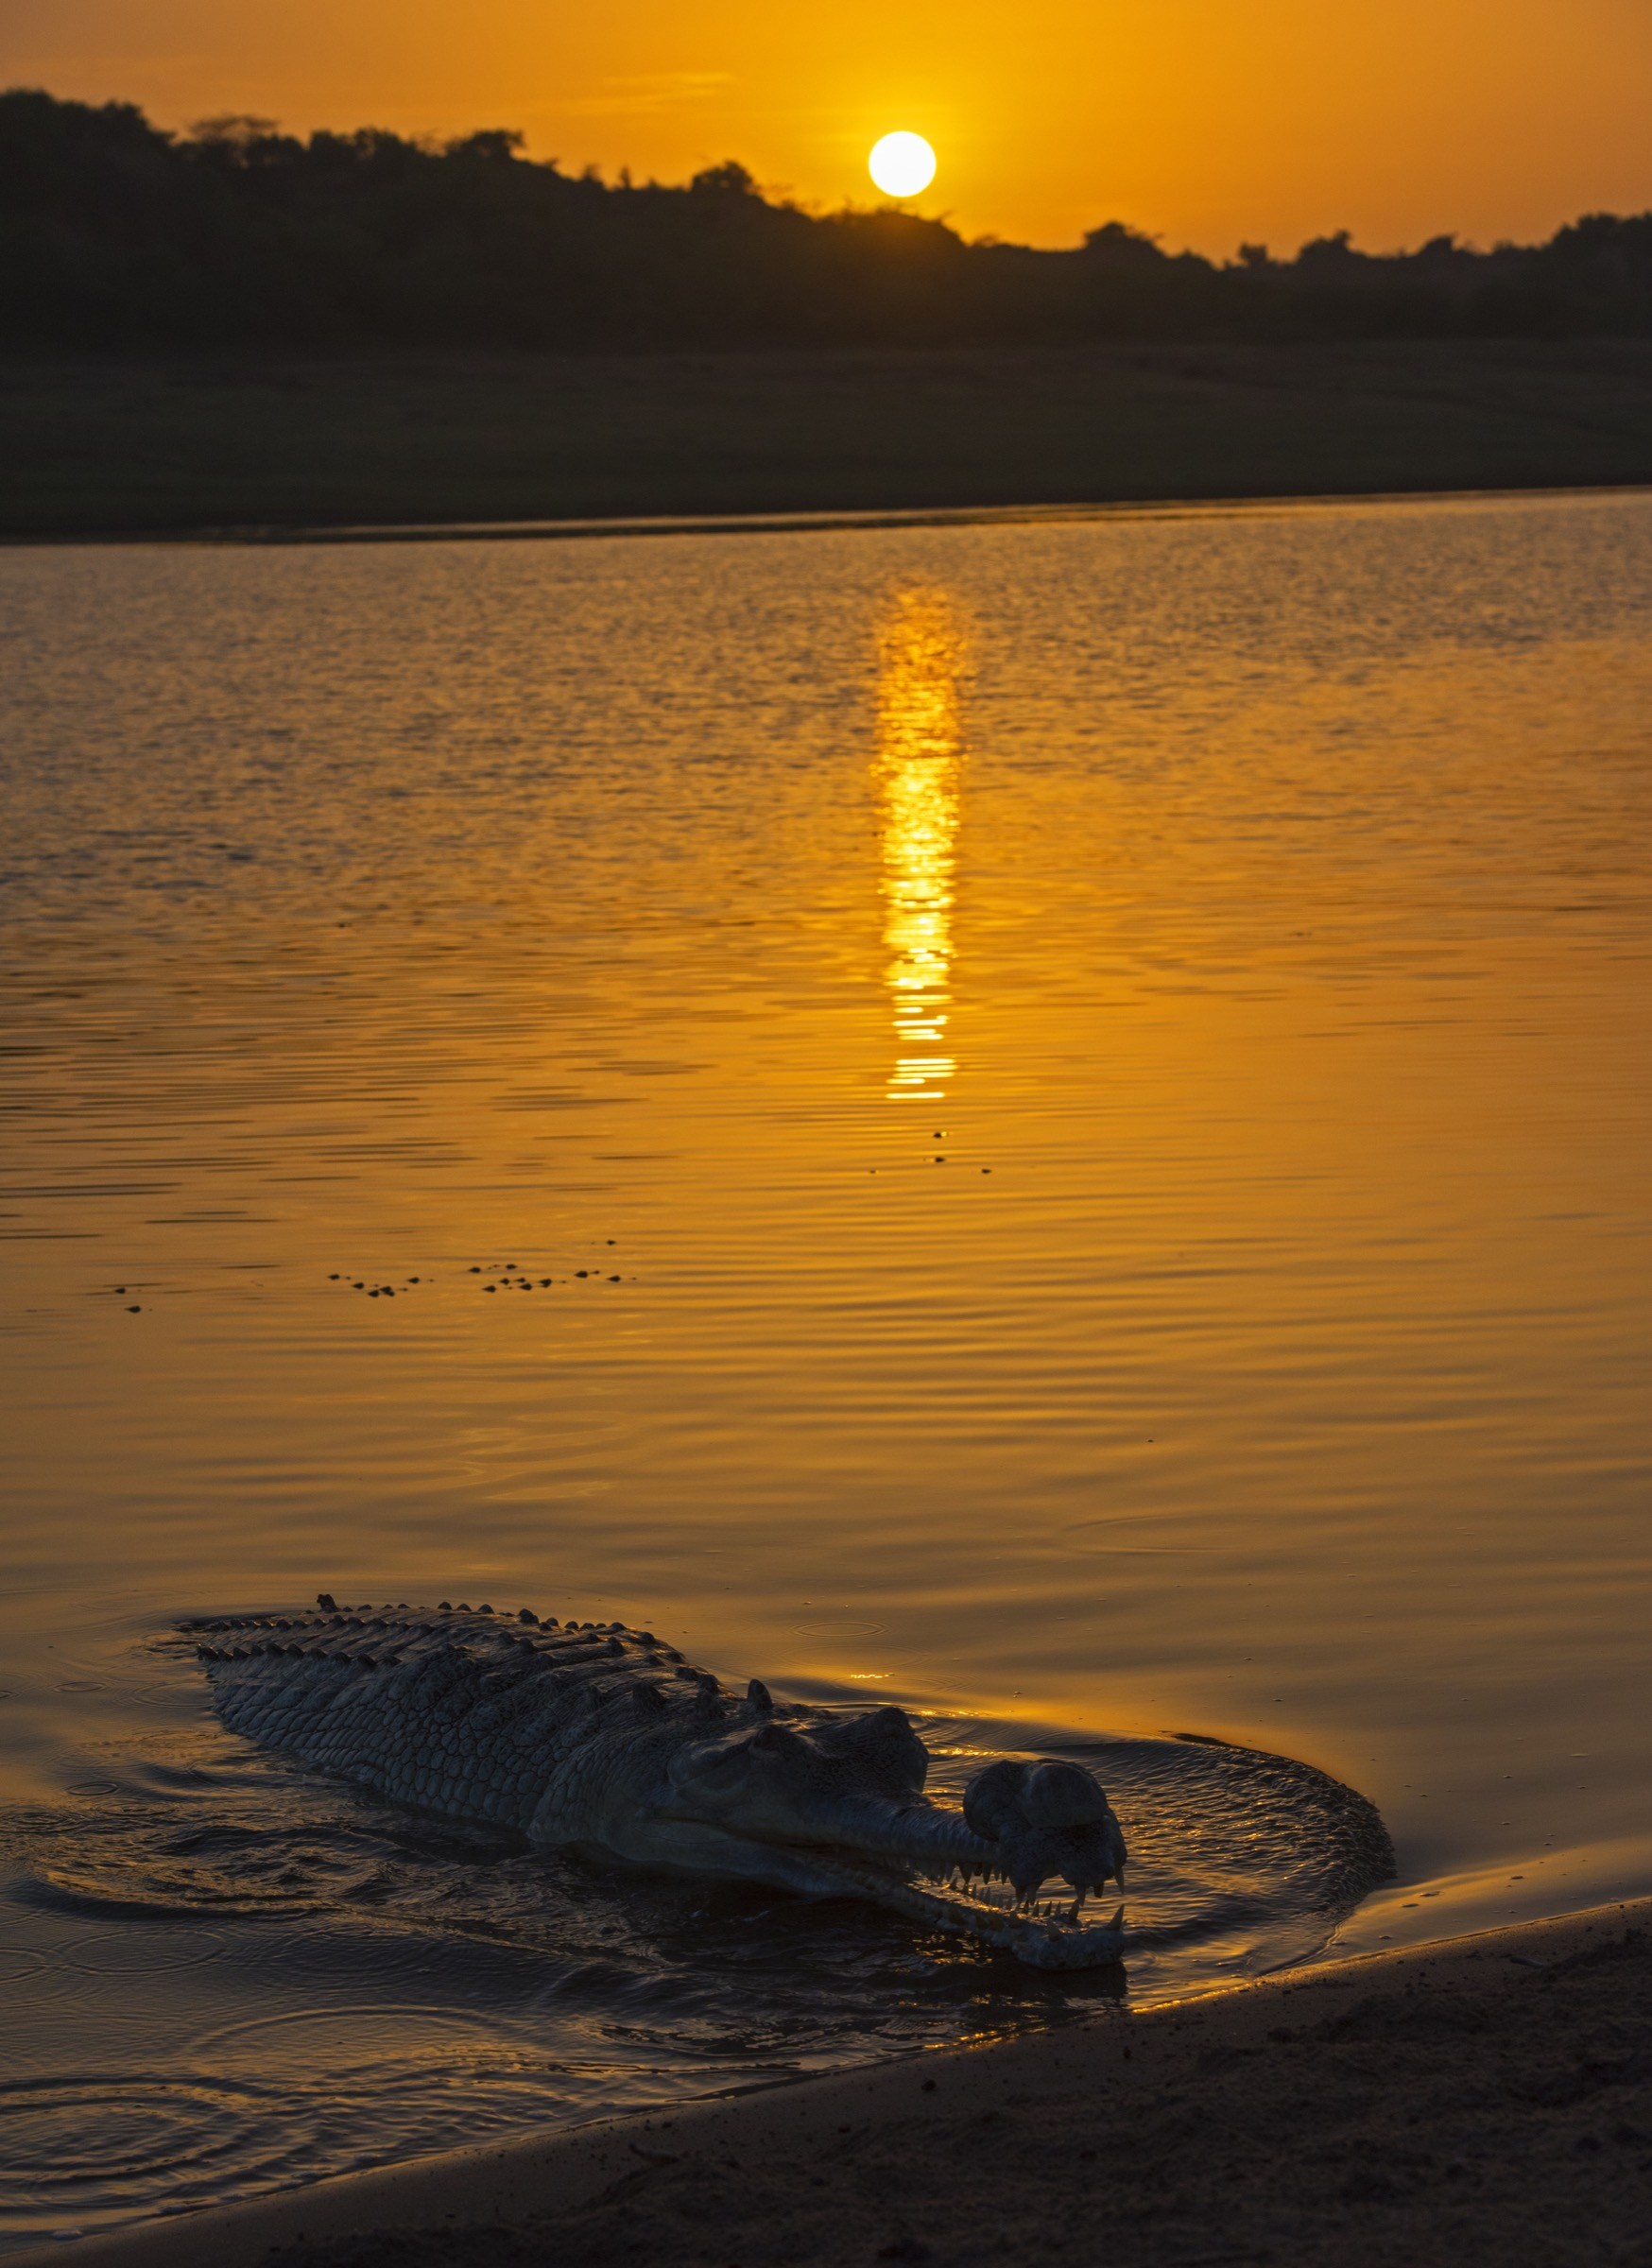 Male gharials, like this one photographed at sunset on the Chambal, become more active during the breeding season as they defend their territories against rival males and predators.